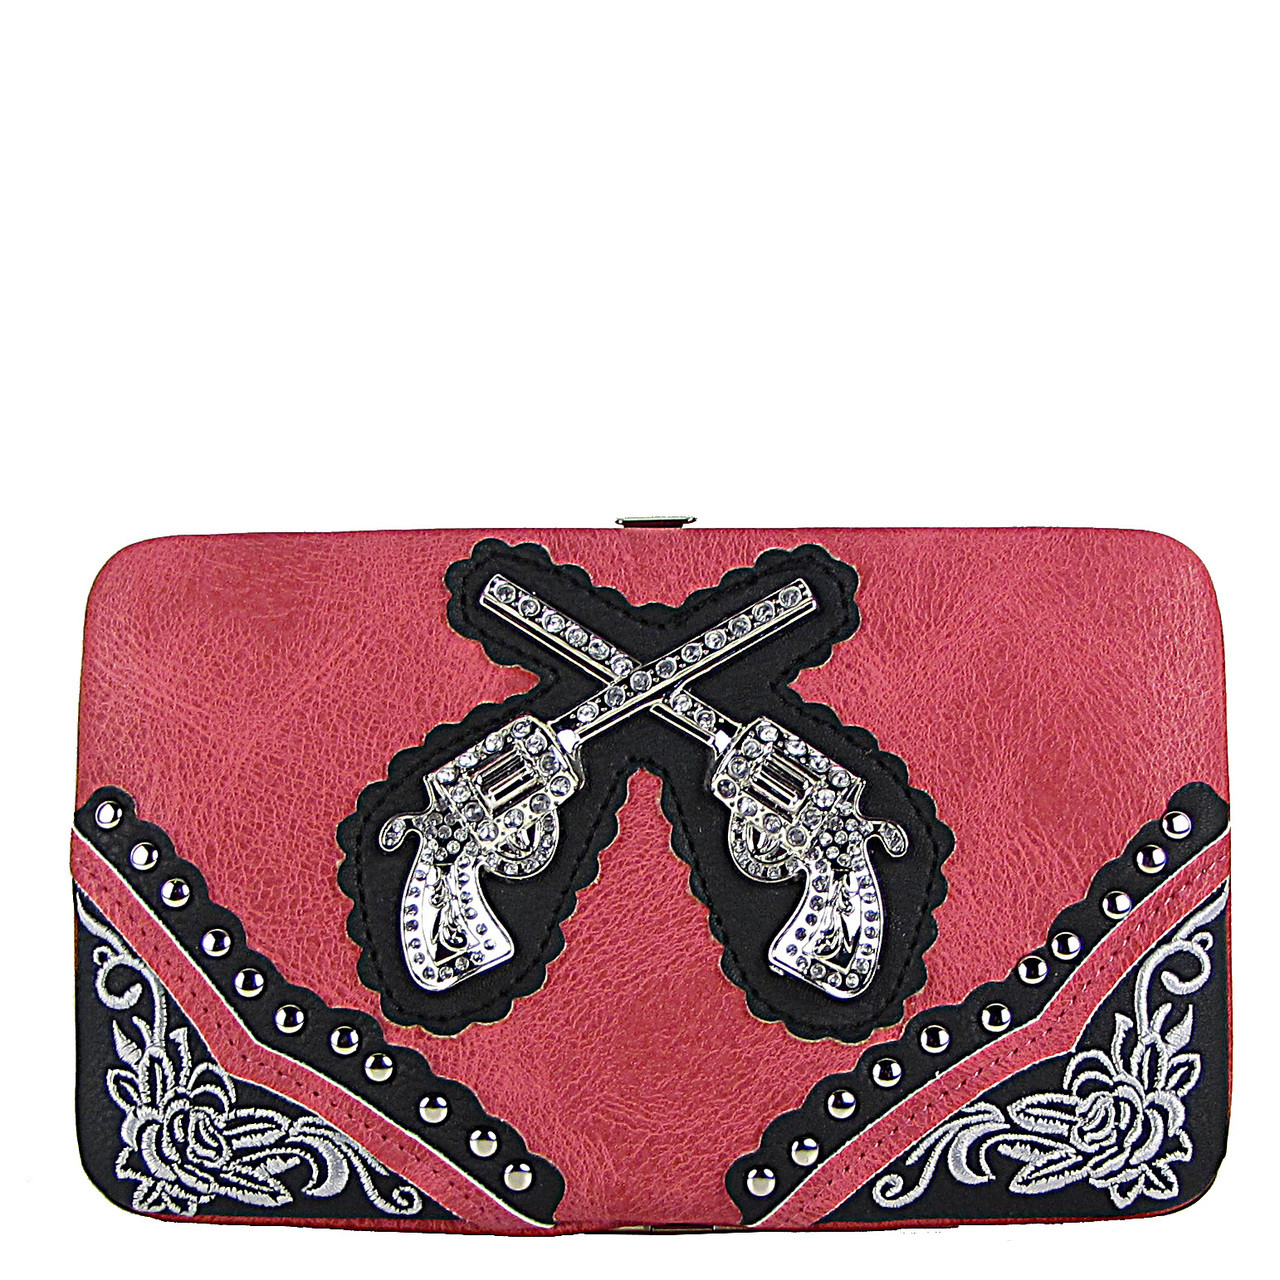 HOT PINK WESTERN STITCHED RHINESTONE PISTOLS LOOK FLAT THICK WALLET FW2-1234HPK